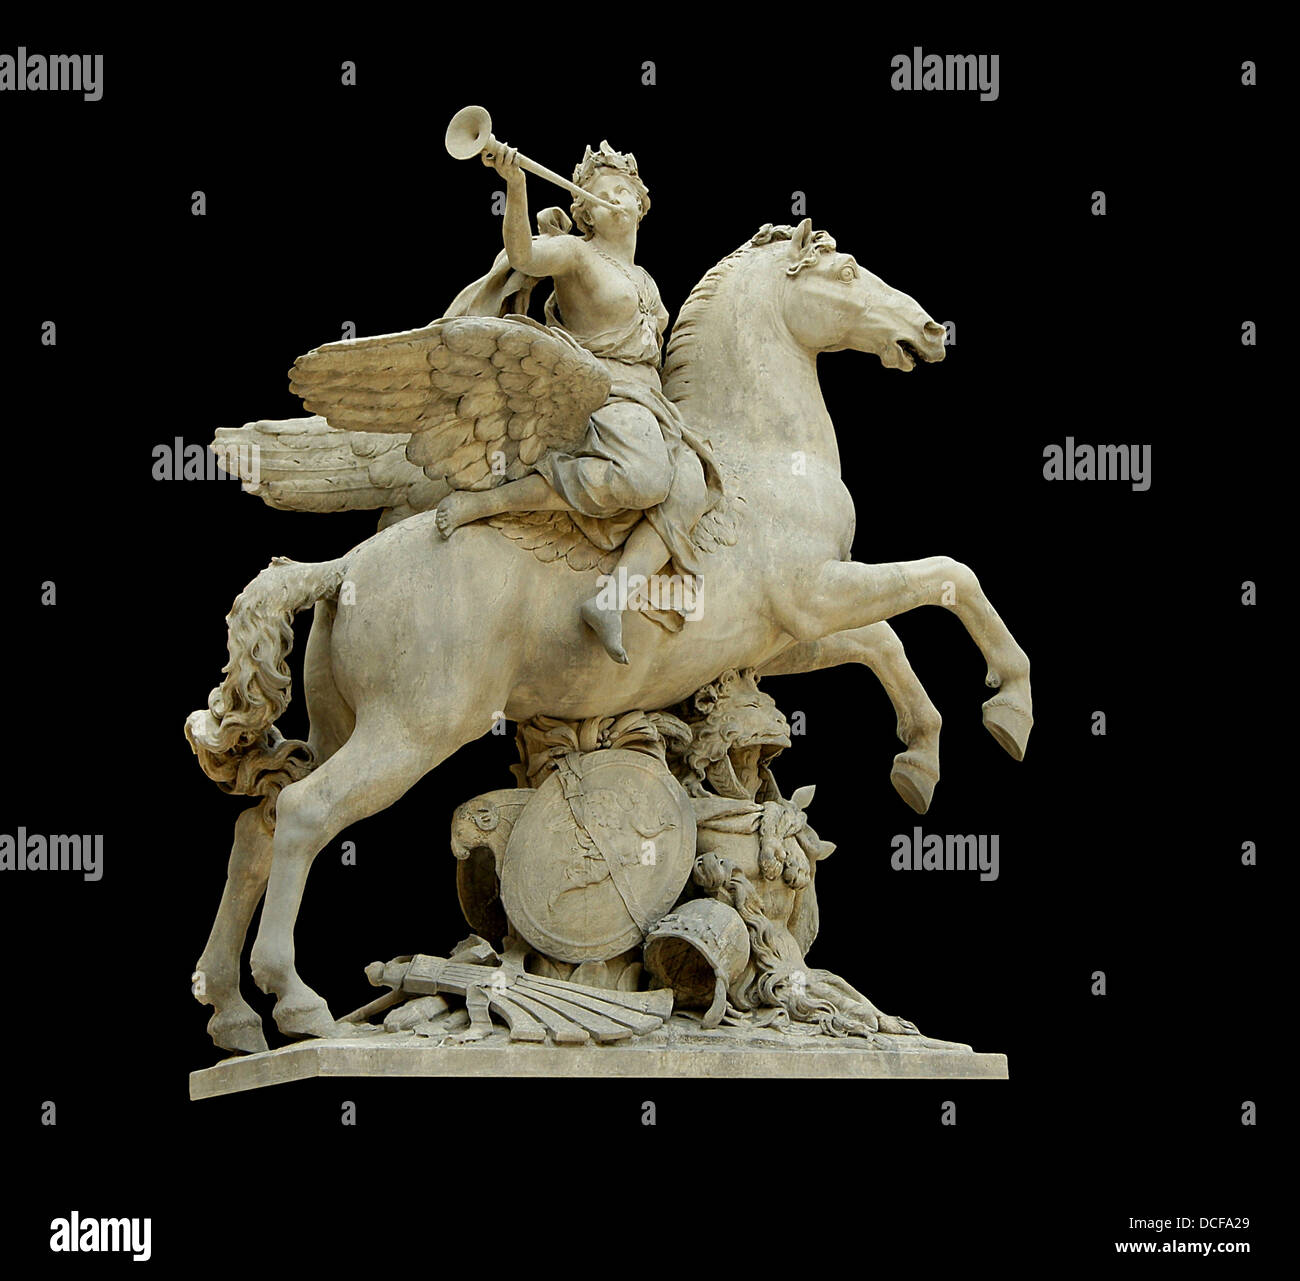 The (King's) fame riding Pegasus. - Stock Image